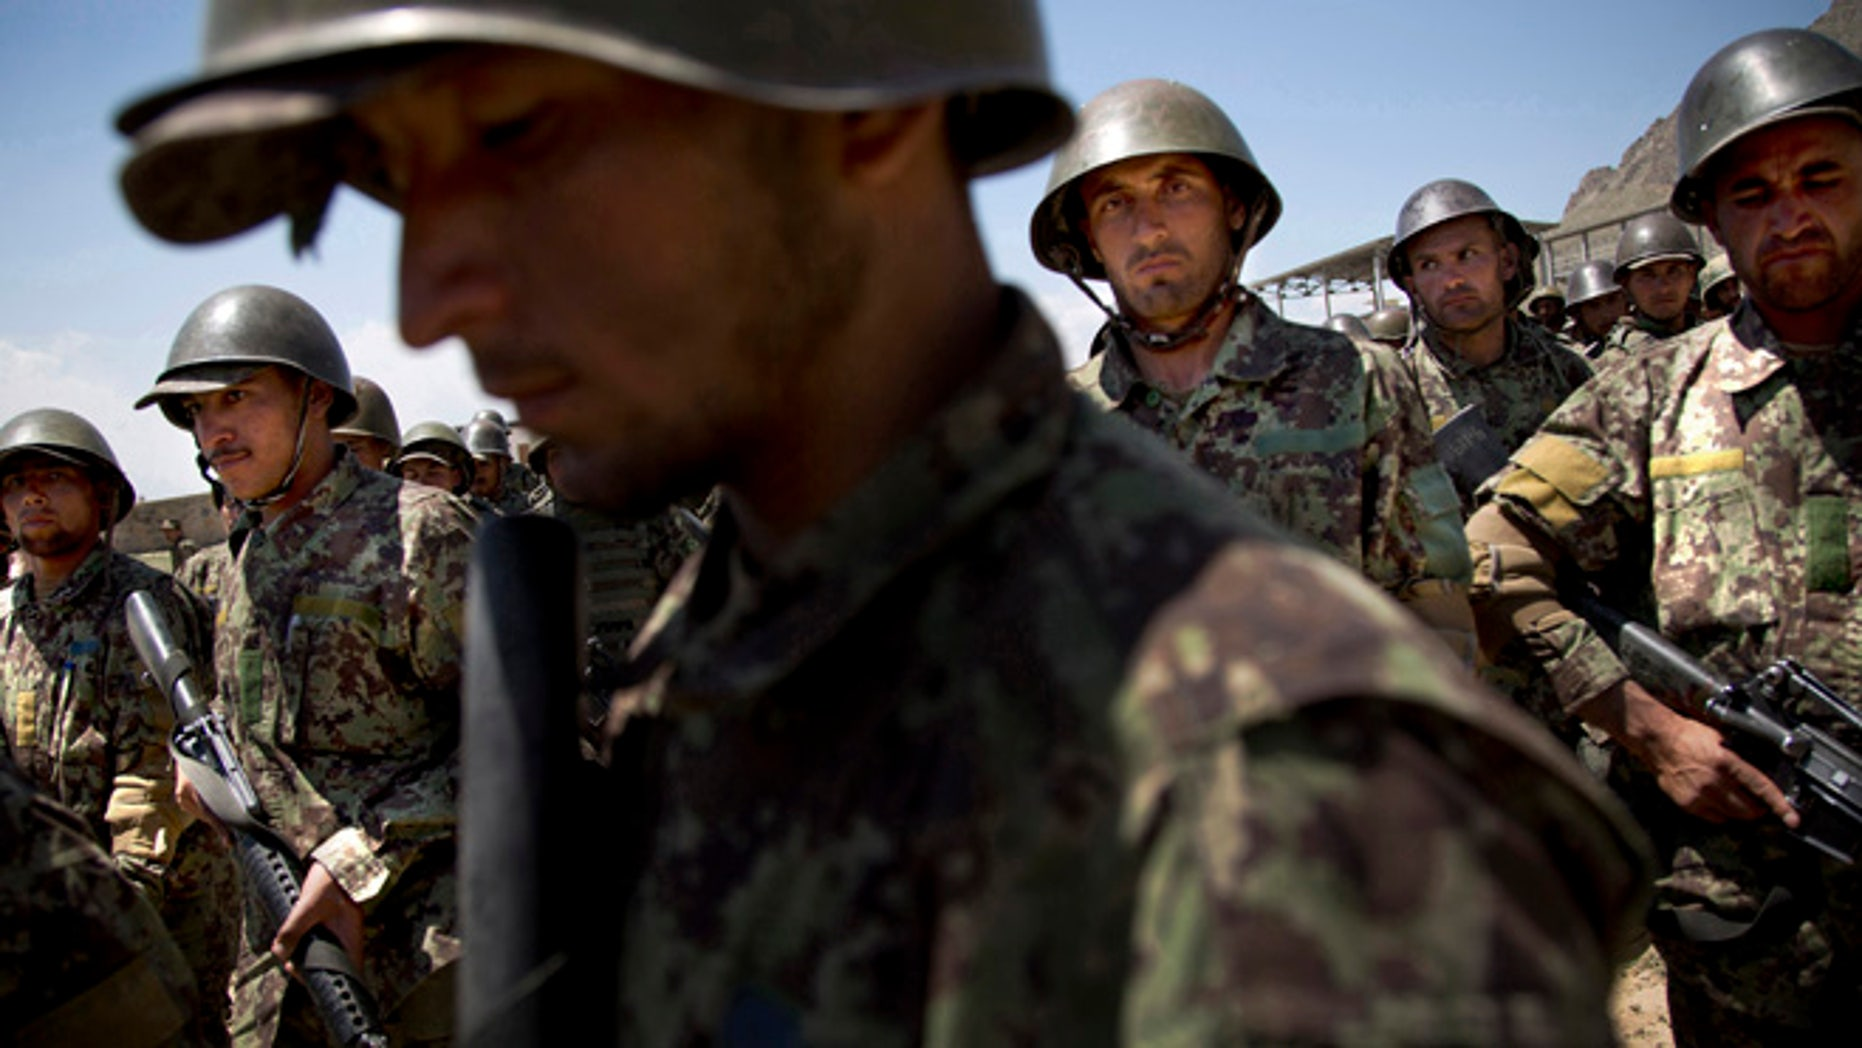 May 8, 2013: In this file photo, Afghan Army soldiers gather at a training facility in the outskirts of Kabul, Afghanistan.